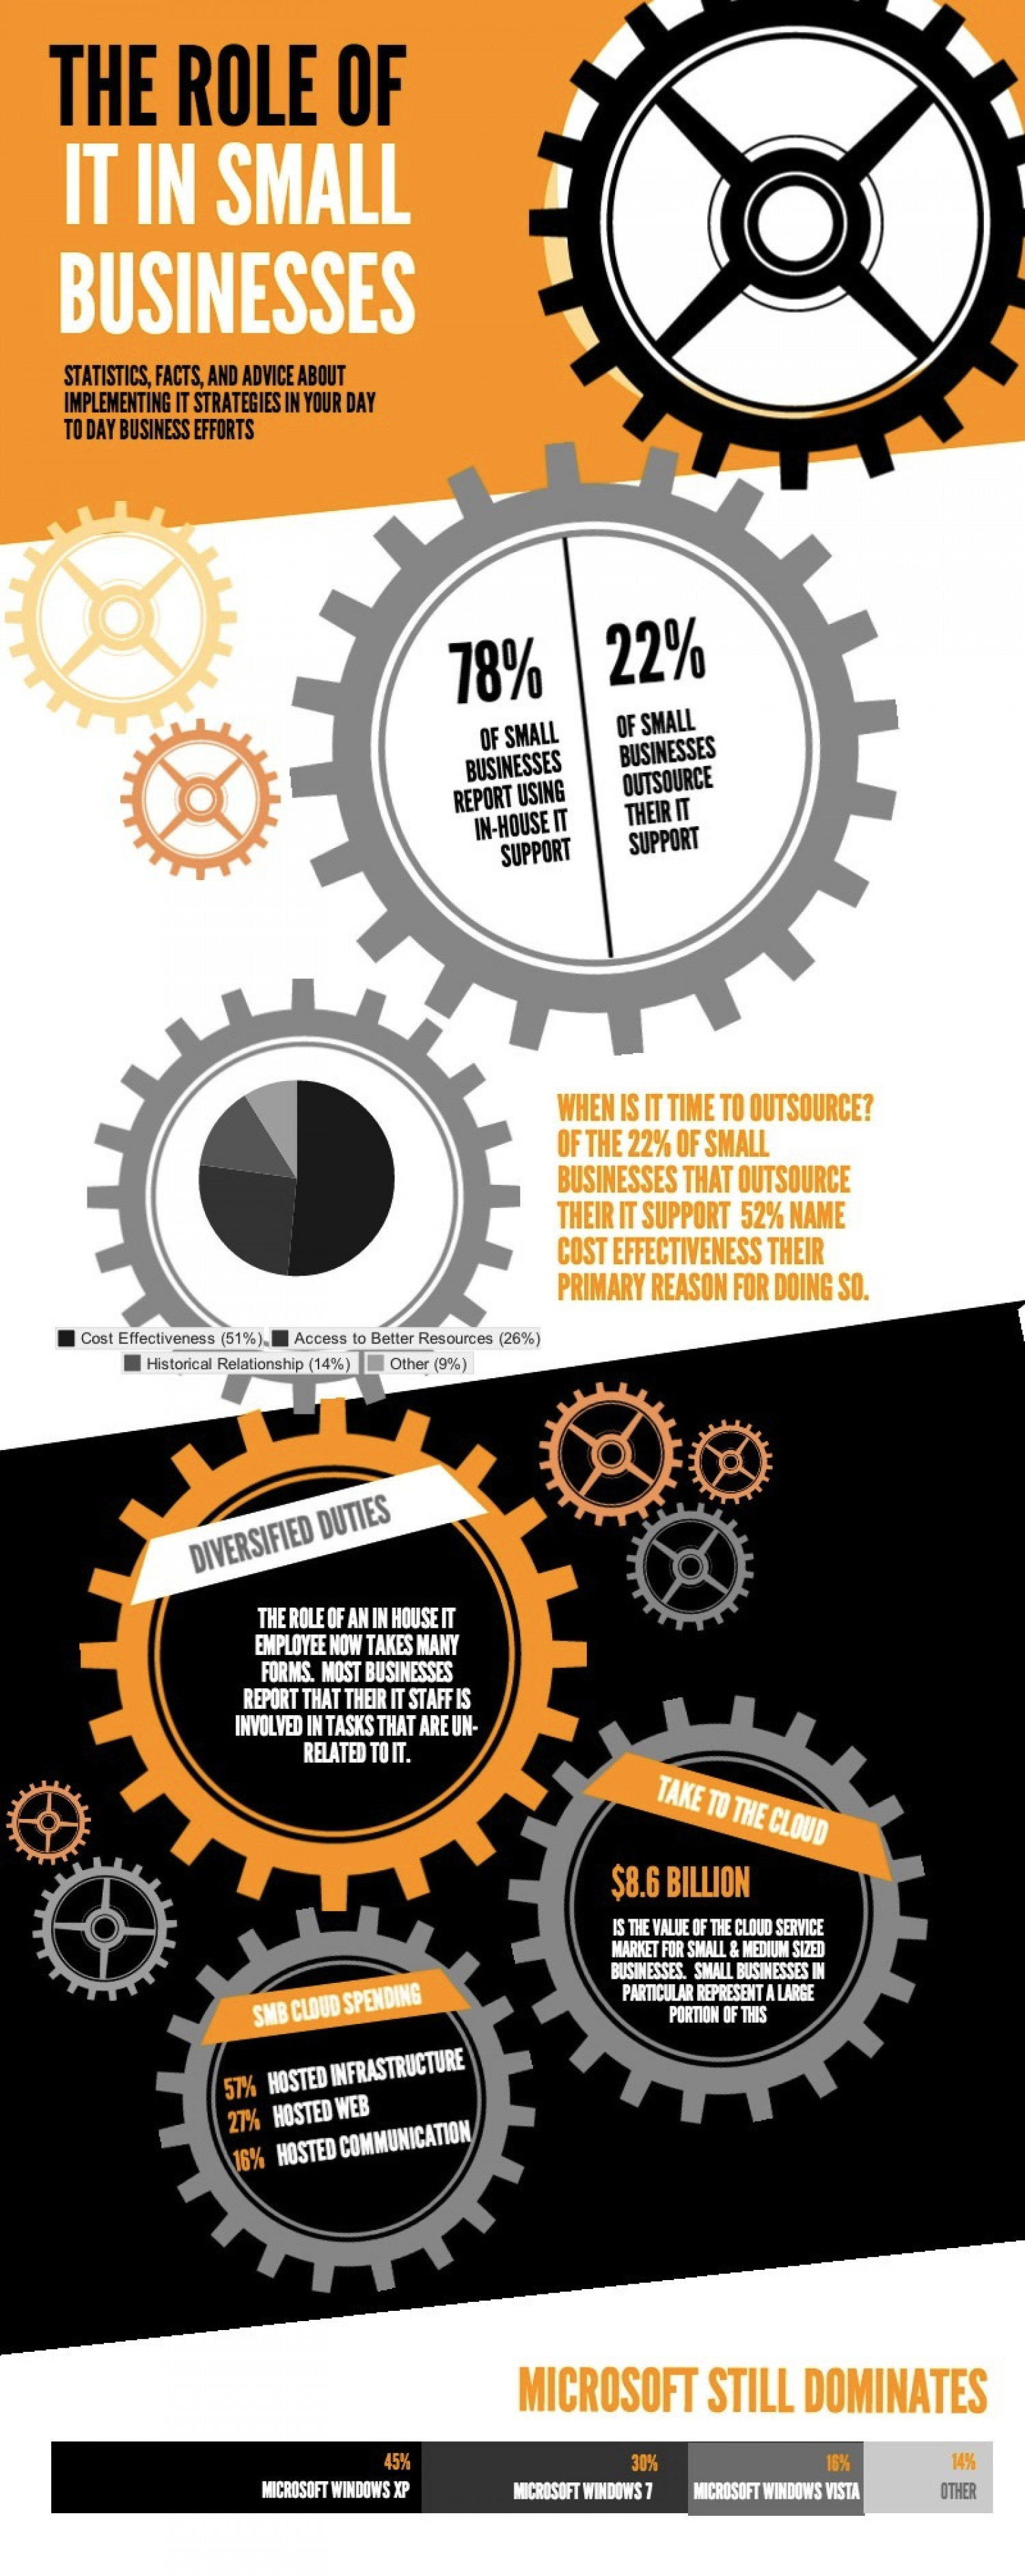 The Role of IT in Small Businesses Infographic